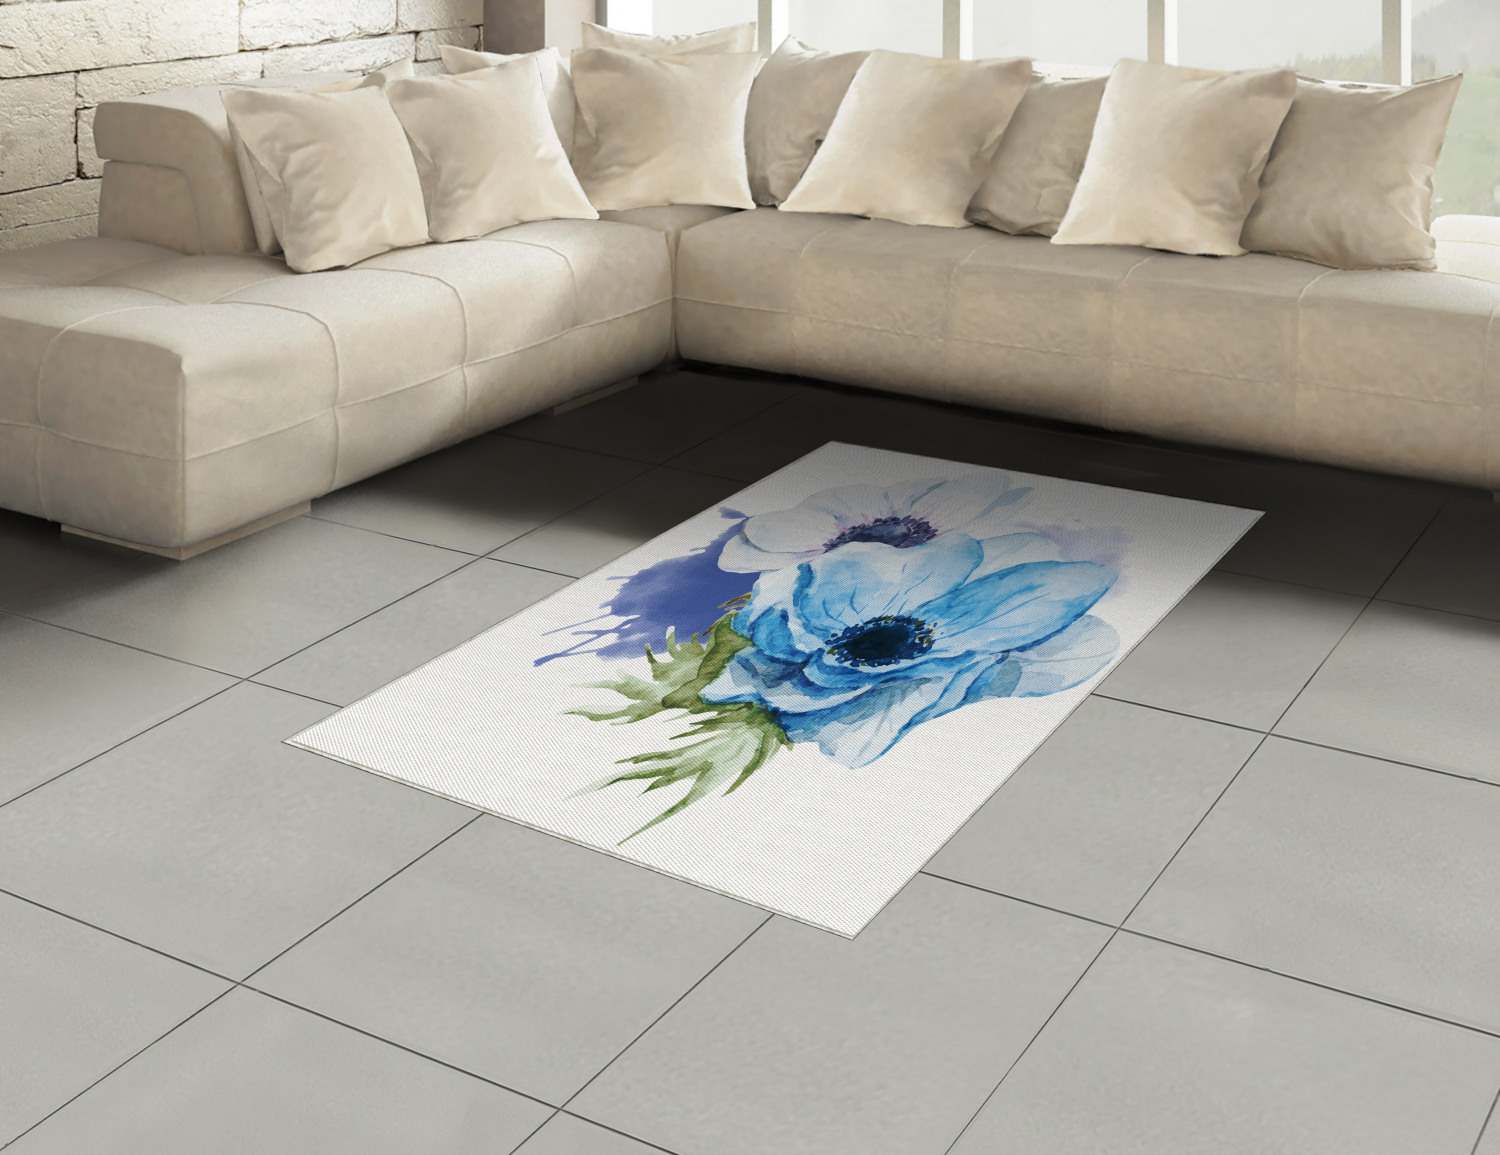 Anemone-Flower-Area-Rug-Decor-Flat-Woven-Accent-Rug-Home-Decor-2-Sizes-Ambesonne thumbnail 42